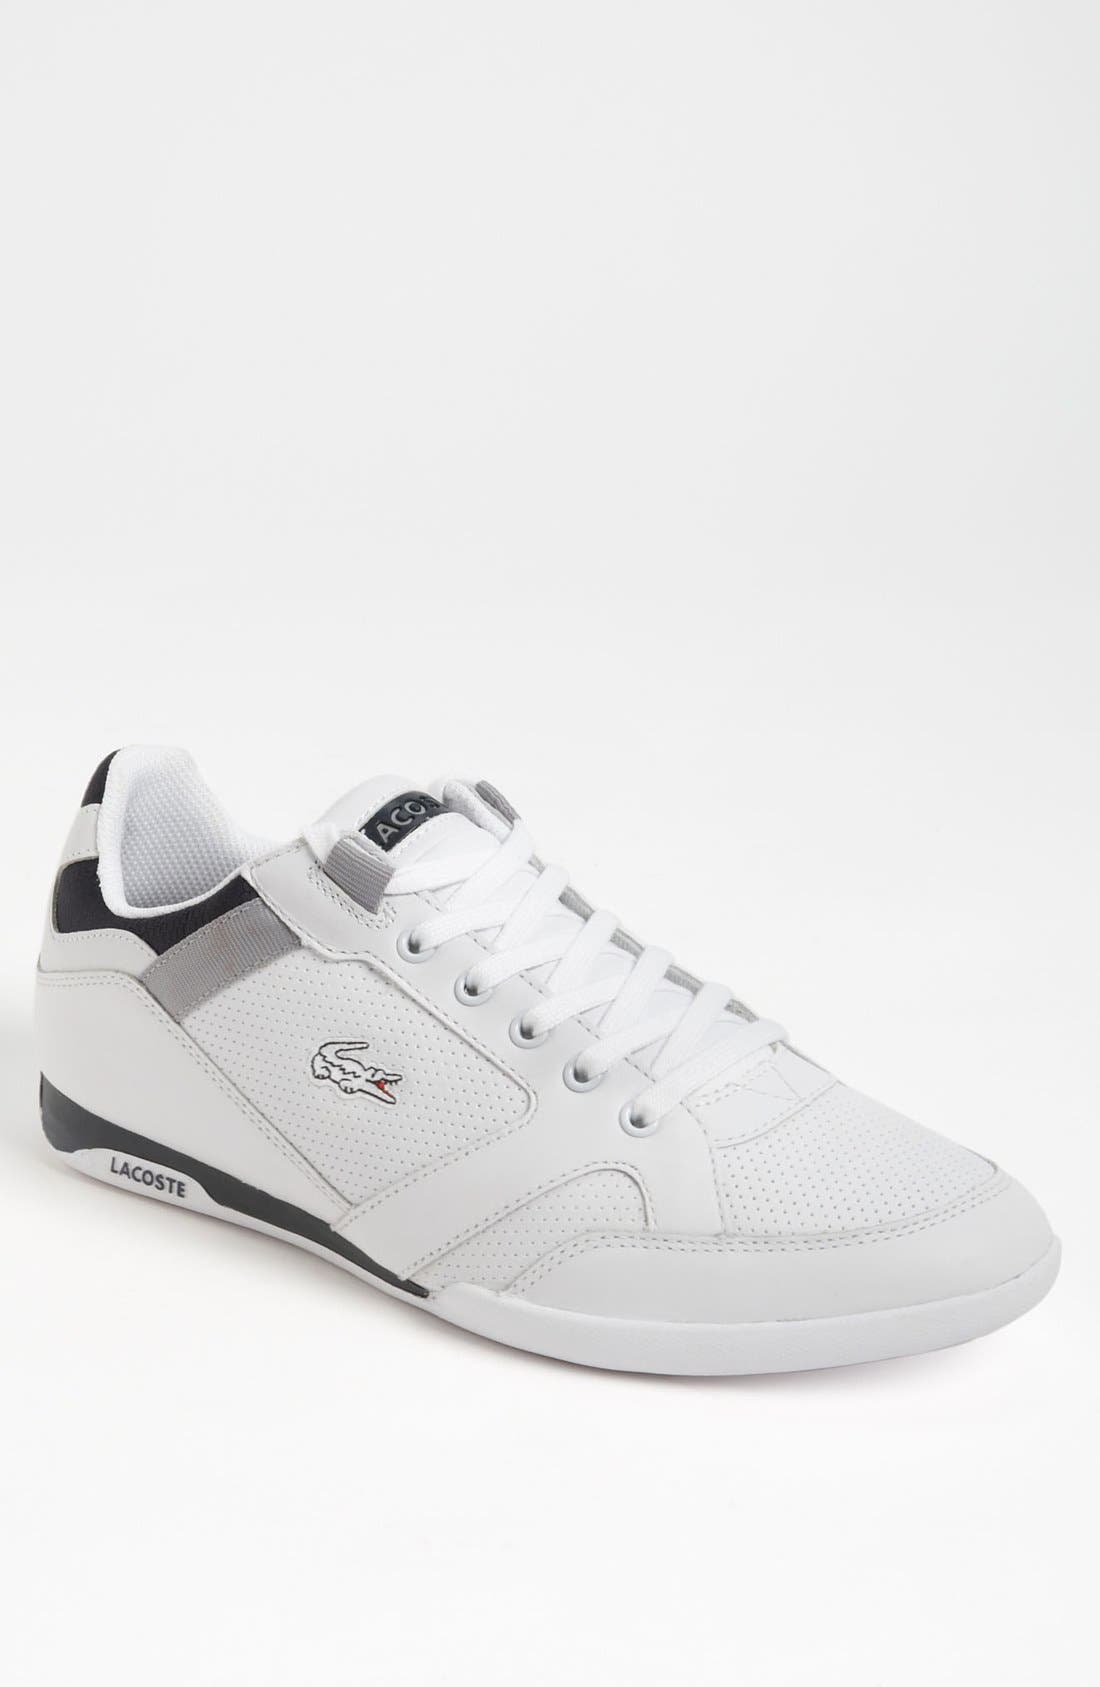 Alternate Image 1 Selected - Lacoste 'Telesio CRE' Sneaker